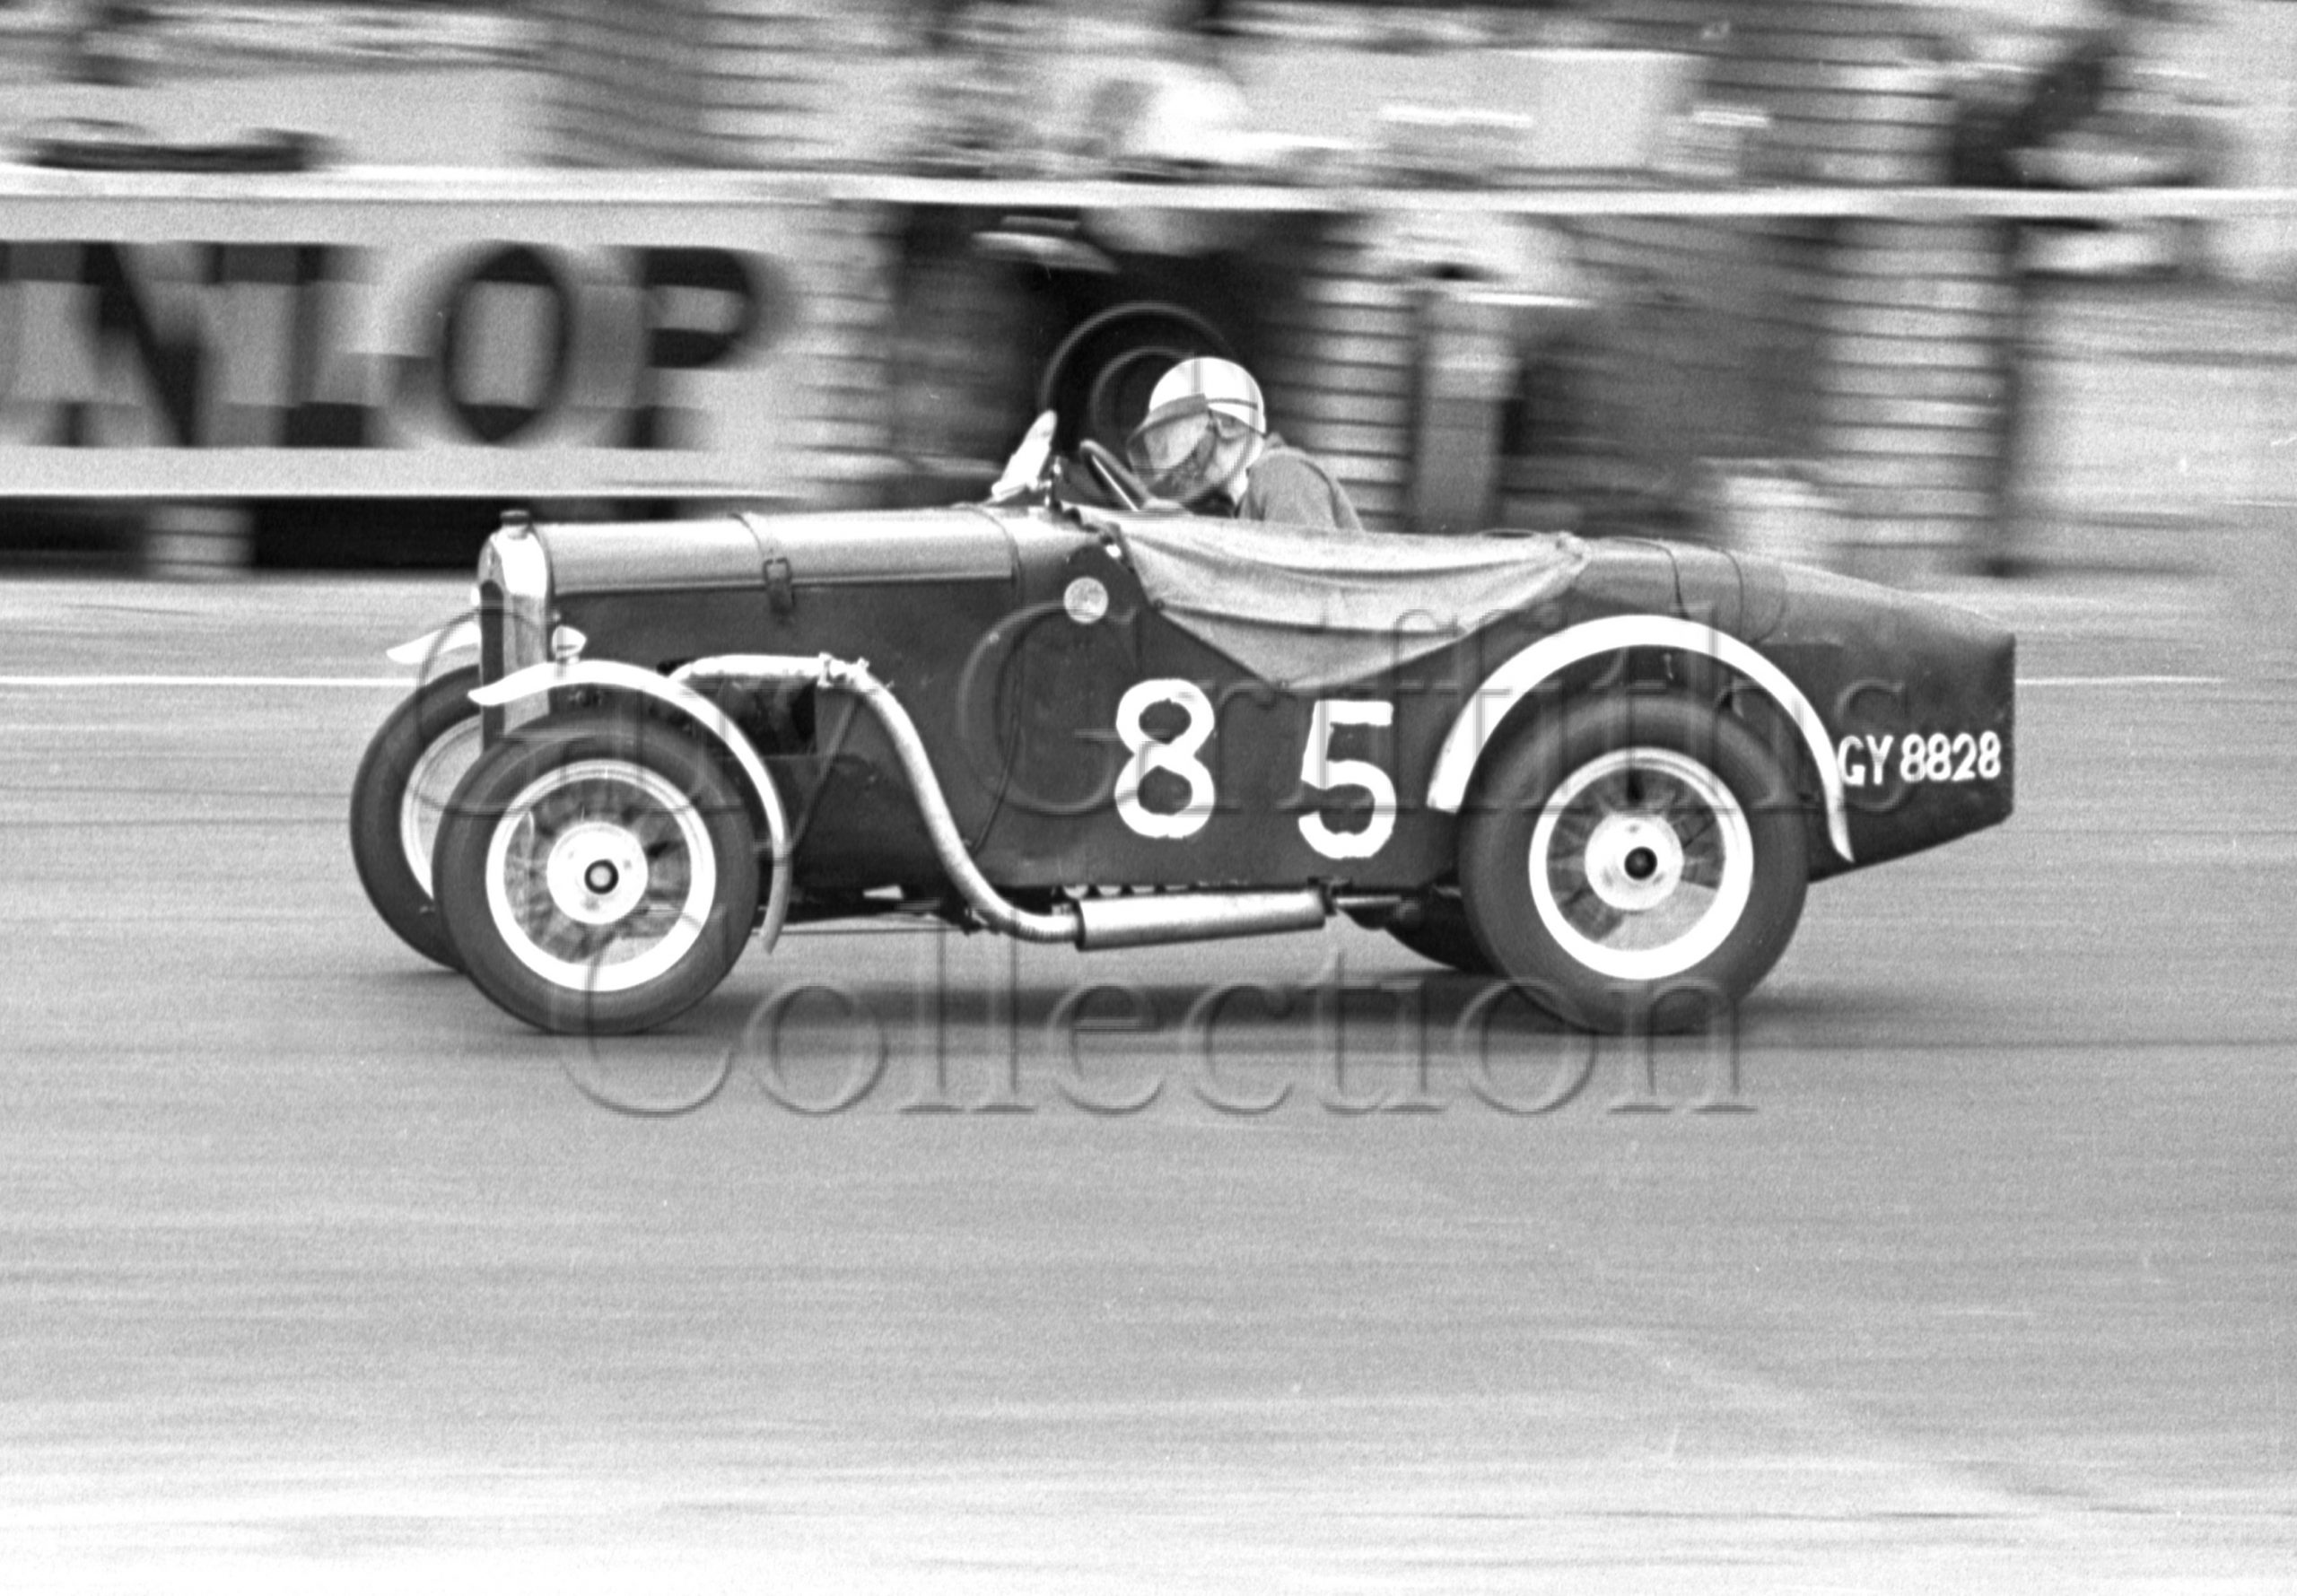 58-346–J-Michelson–Austin-Sports–GY-8828–Silverstone-26-07-1952.jpg - Guy Griffiths Collection